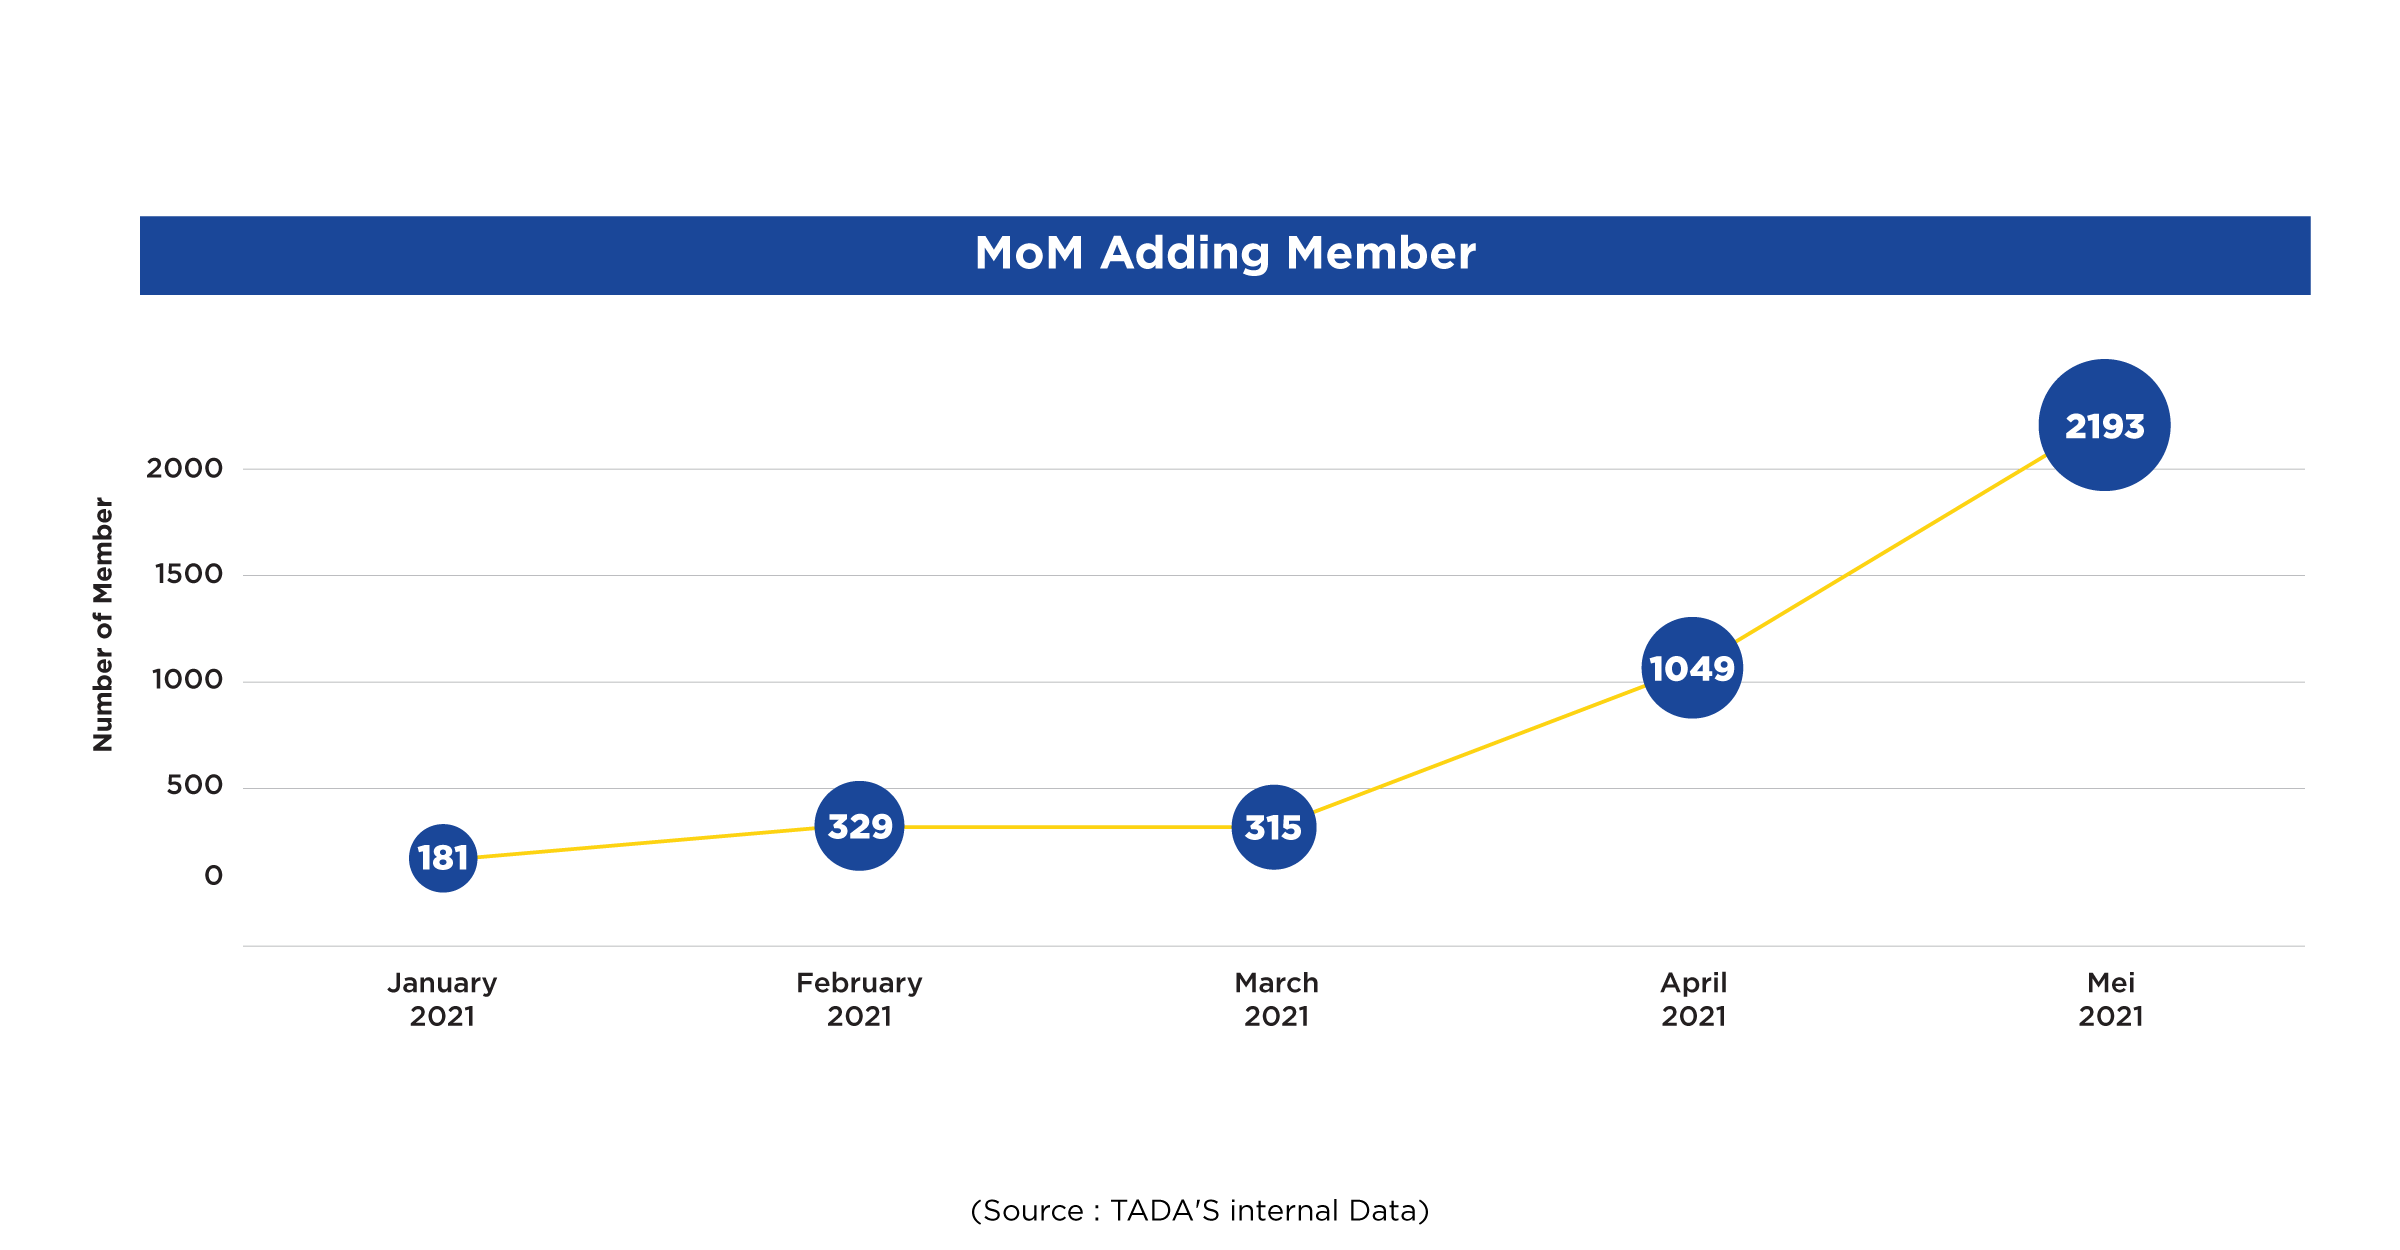 member addition month on month